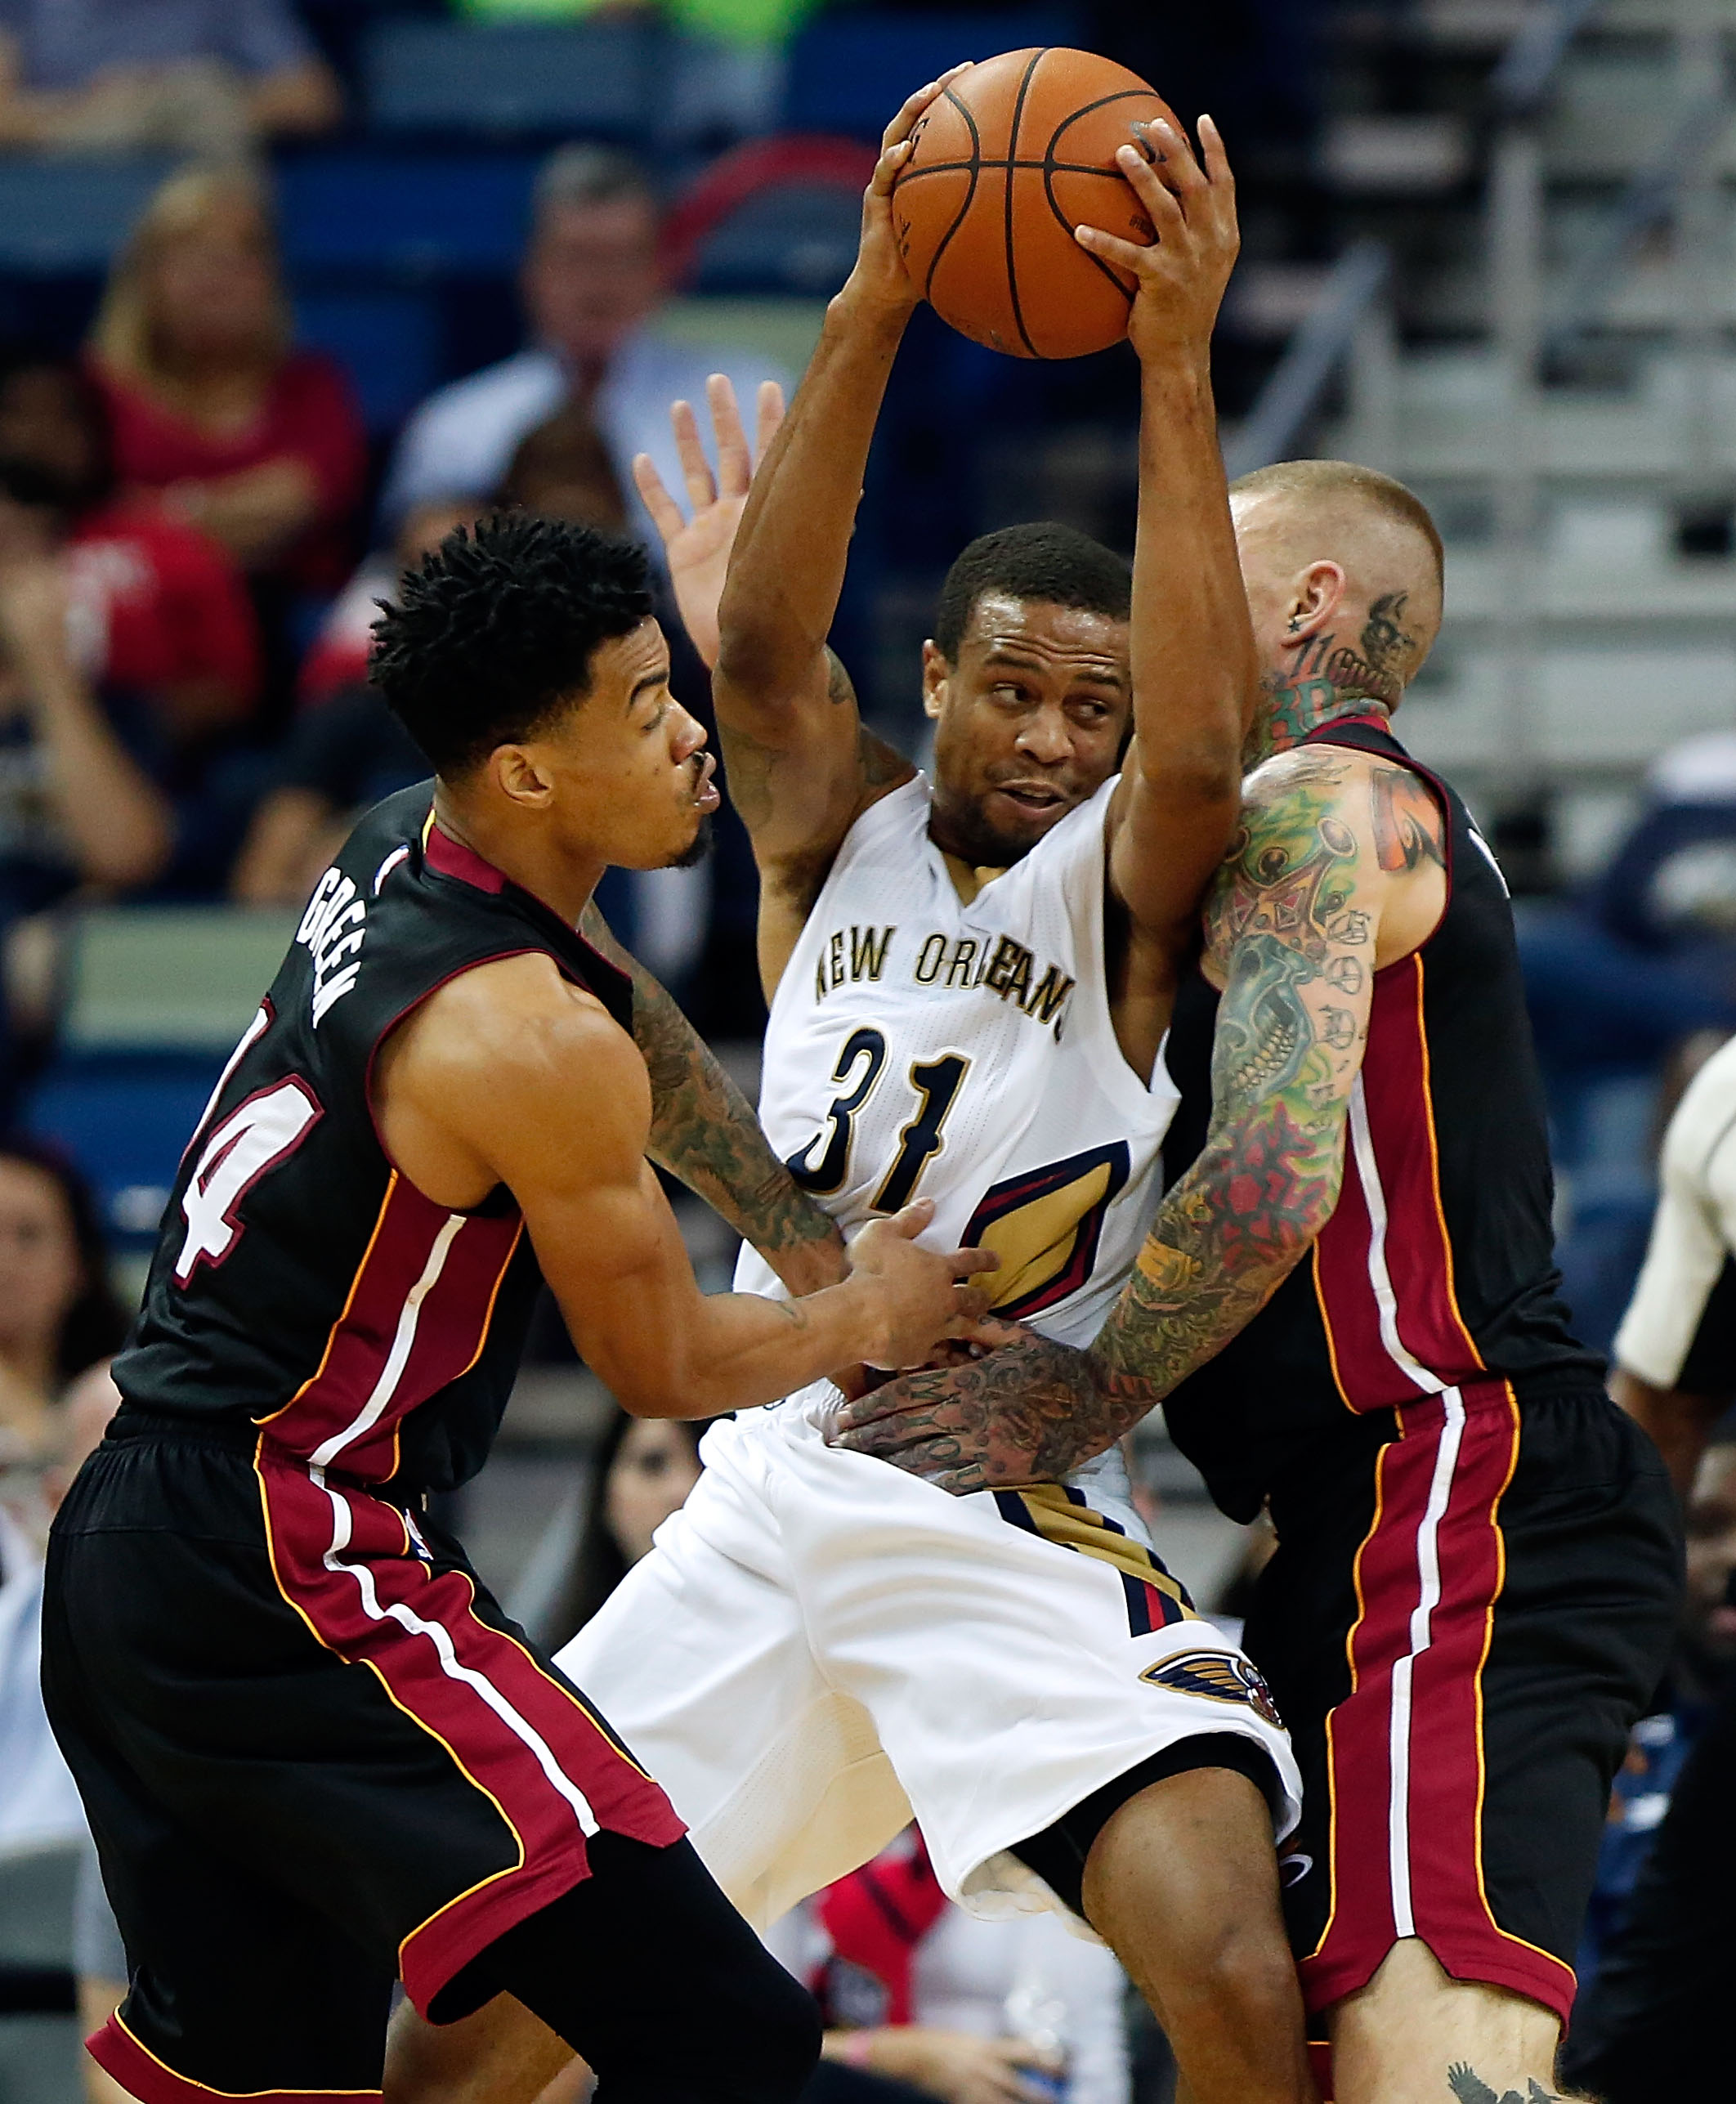 New Orleans Pelicans guard Bryce Dejean-Jones (31) is stopped by Miami Heat forward Chris Andersen, right, and guard Gerald Green, left, during the second half of an NBA preseason basketball game in New Orleans, Friday, Oct 23, 2015. The Pelicans won 93-9